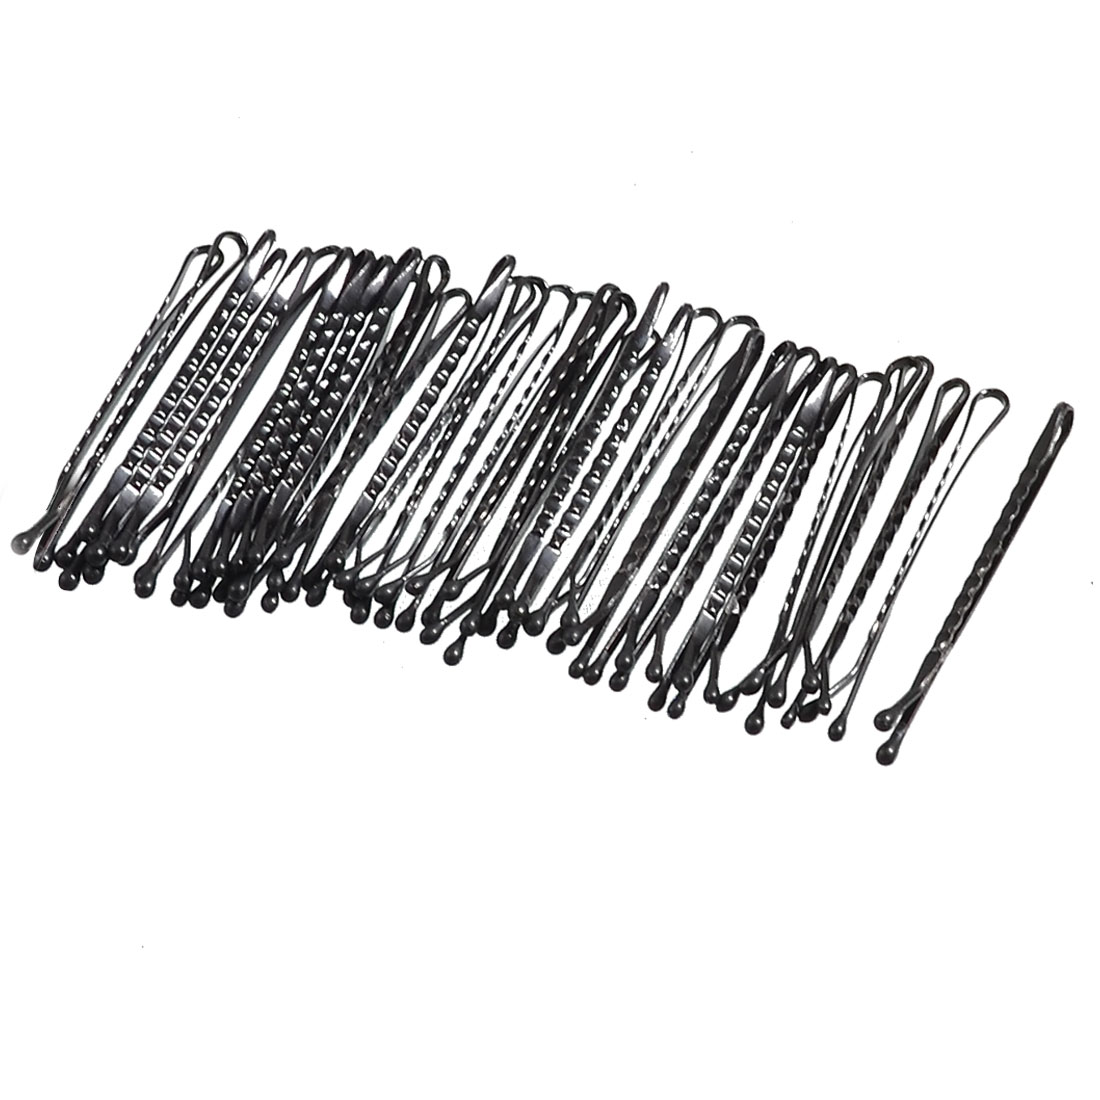 Lady Hair Barrette Bar Clips DIY Hairstyle Bobby Pin Black 37 Pcs